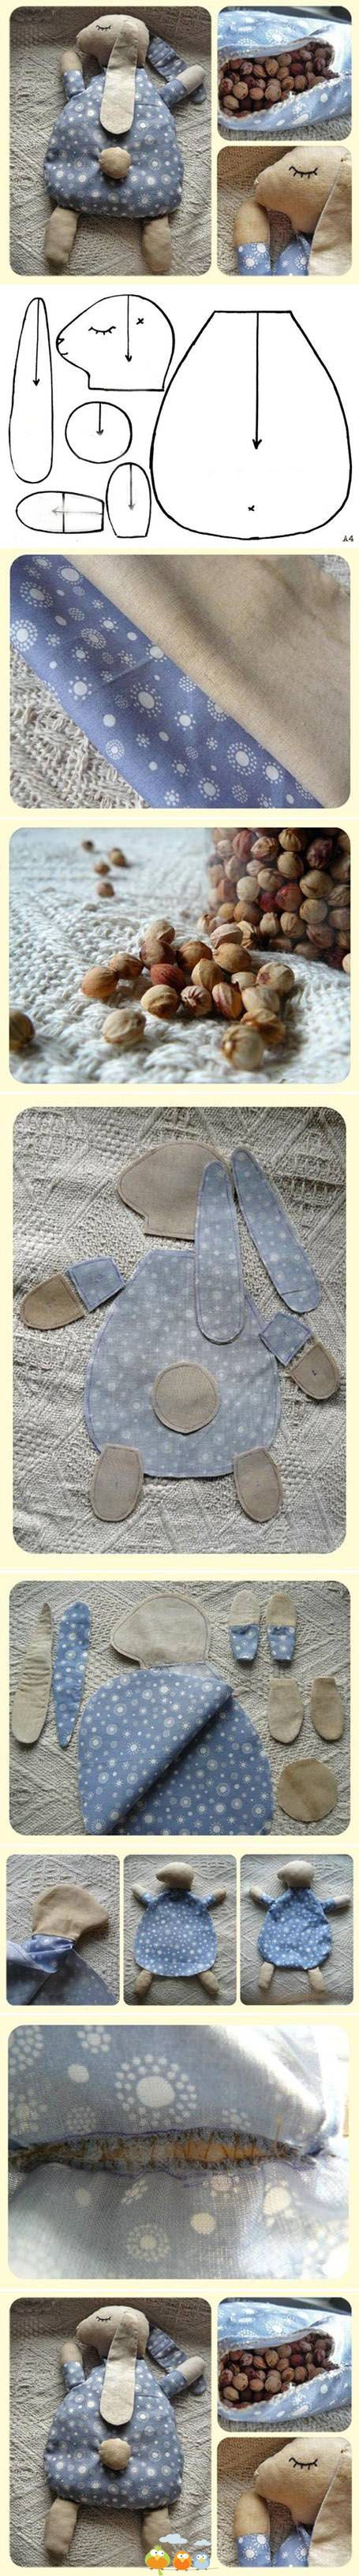 inspiring little sleeping rabbit bean bag or wheat bag plushie pattern